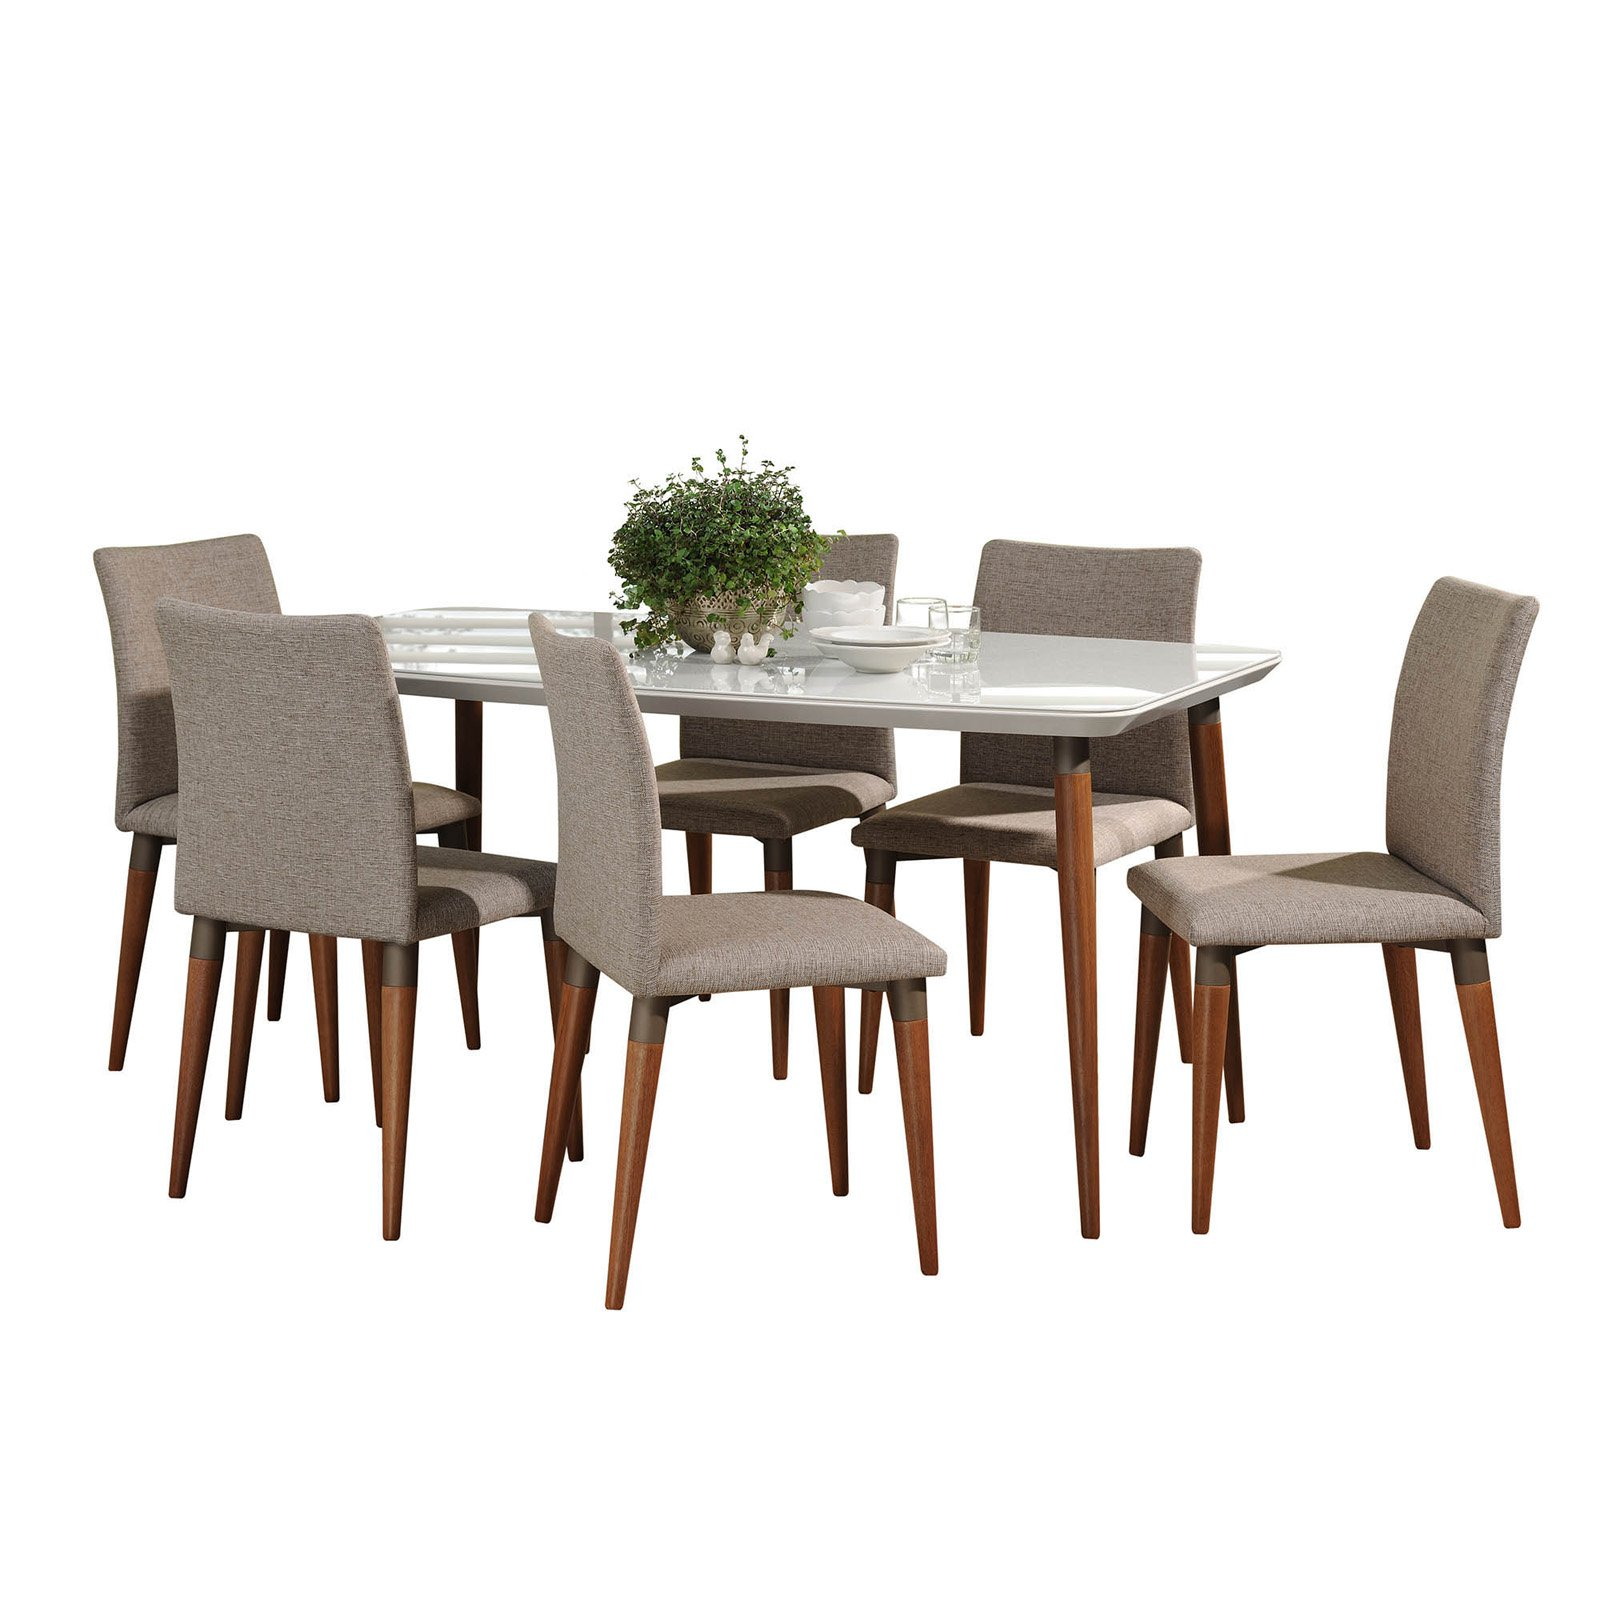 Manhattan Comfort Charles 7 Piece Dining Table Set